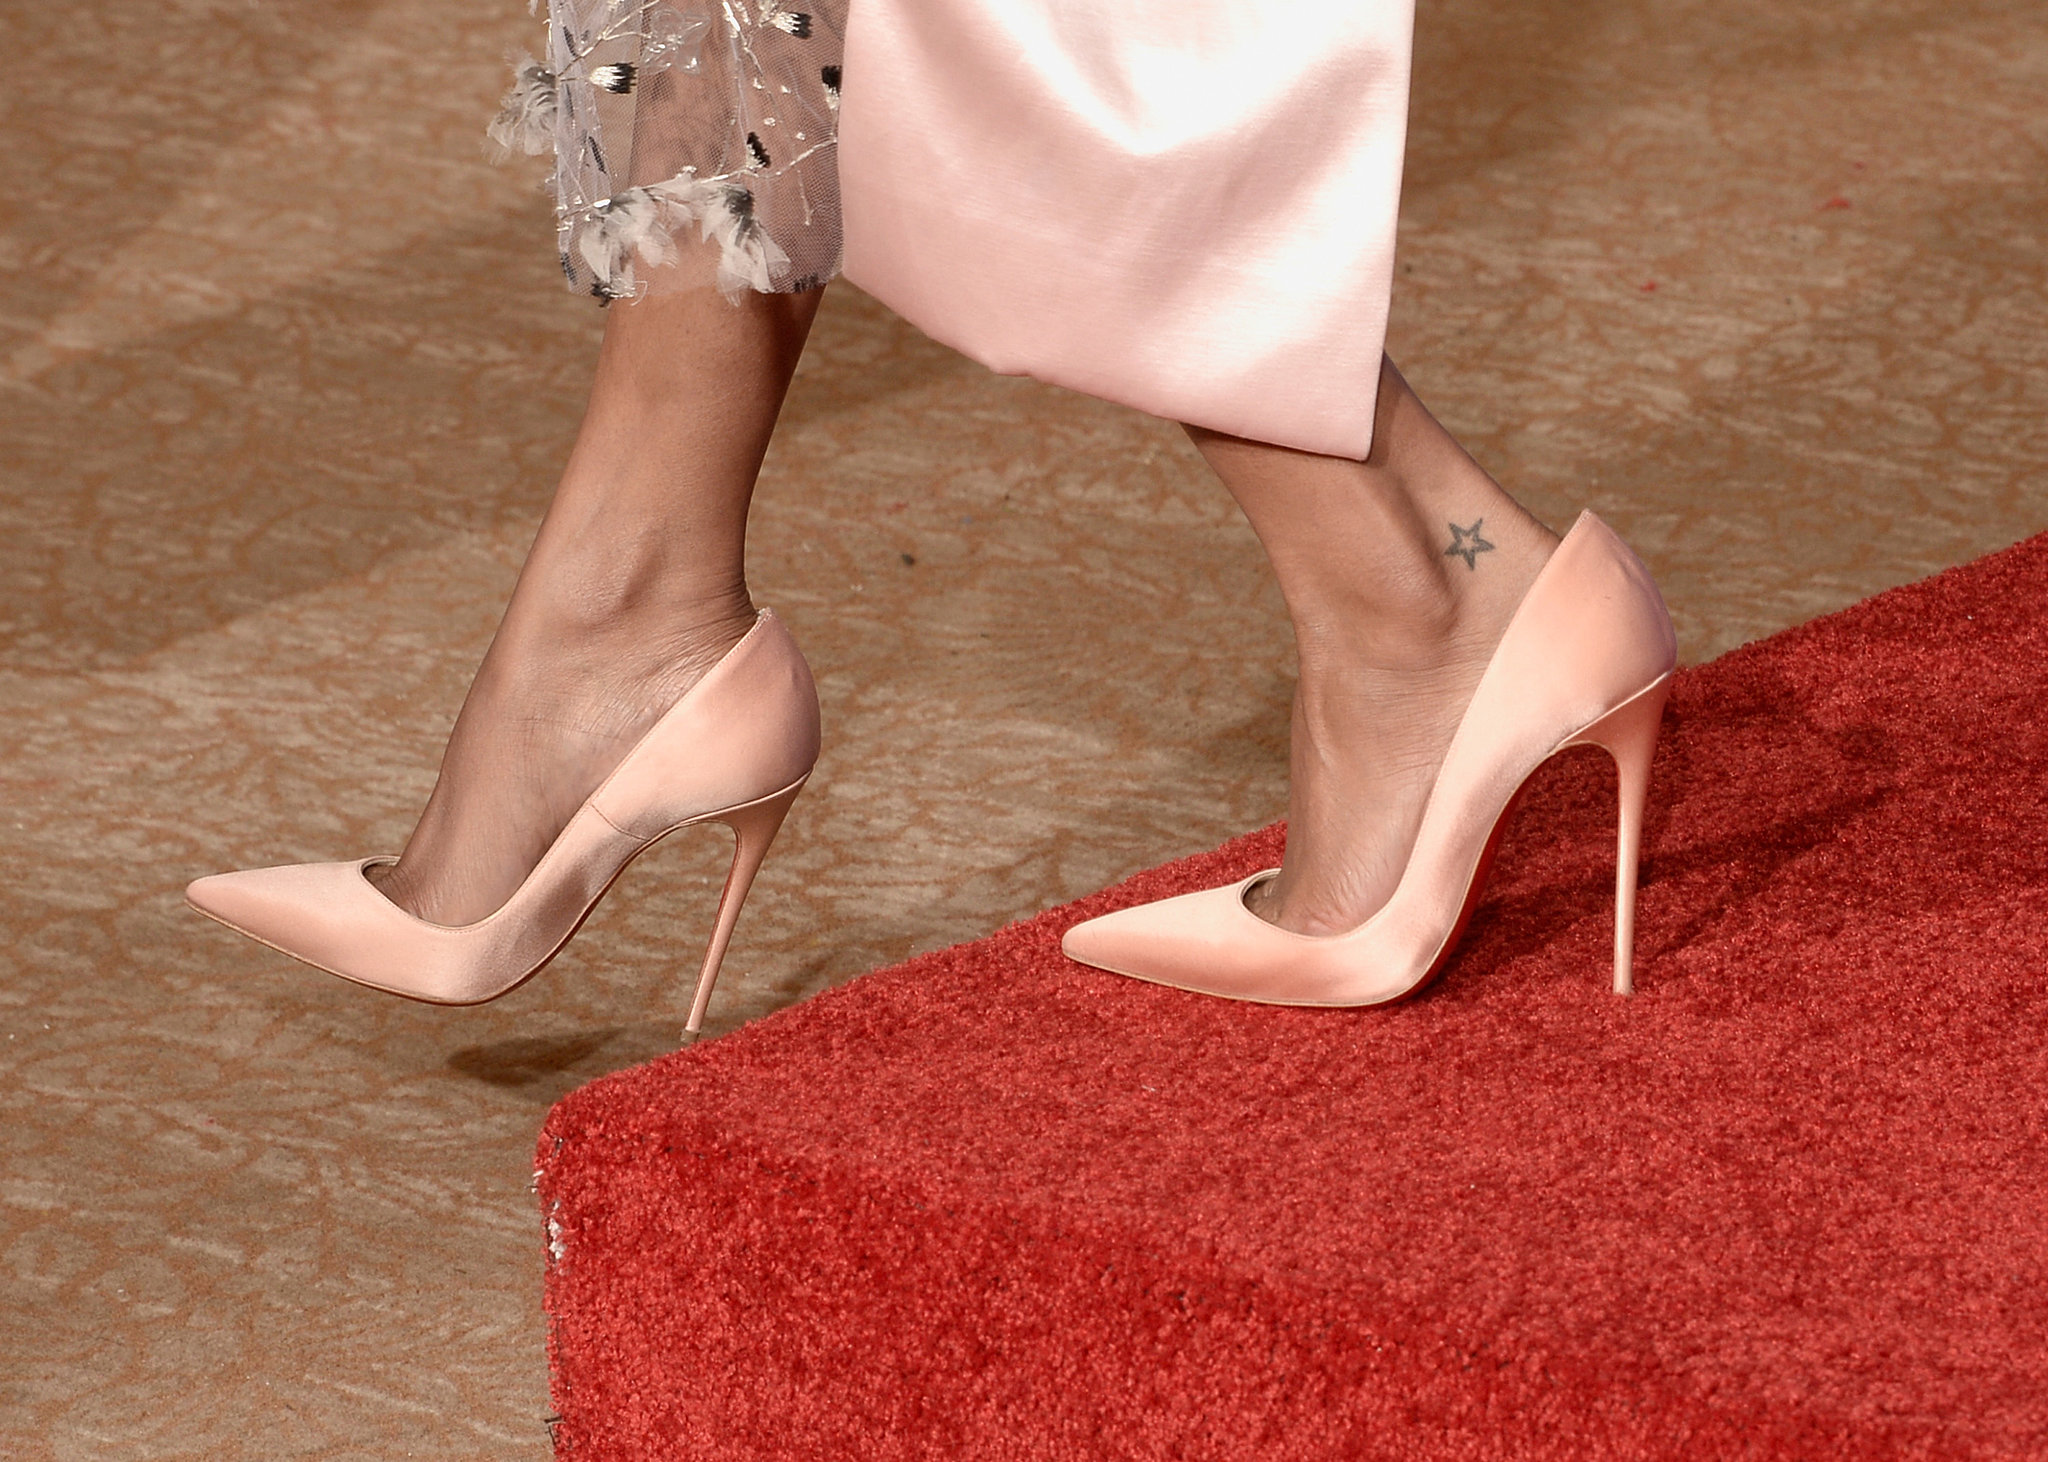 Zoe Saldana's satin Louboutins were the prettiest shade of petal pink.